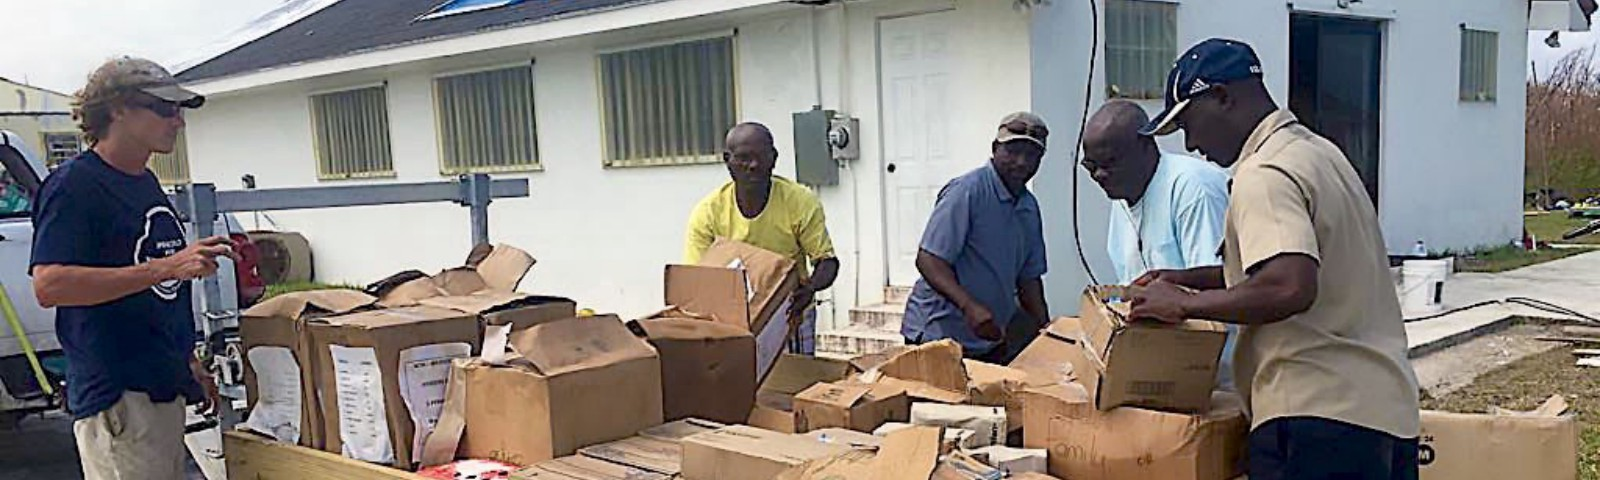 OpenWorld Relief donation delivery after 2019 Hurricane Dorian in The Bahamas